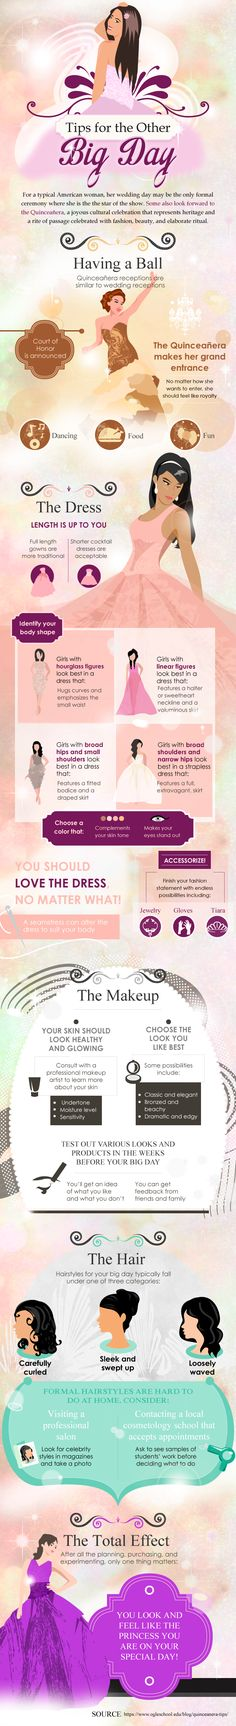 Quinceanera has traditionally been a cultural celebration that resembles a Sweet 16 party. Quinceanera Planning, Quinceanera Party, Quinceanera Traditions, Quinceanera Invitation Wording, Quince Invitations, Debut Ideas, Quince Dresses, 15 Dresses, Sweet 16 Parties